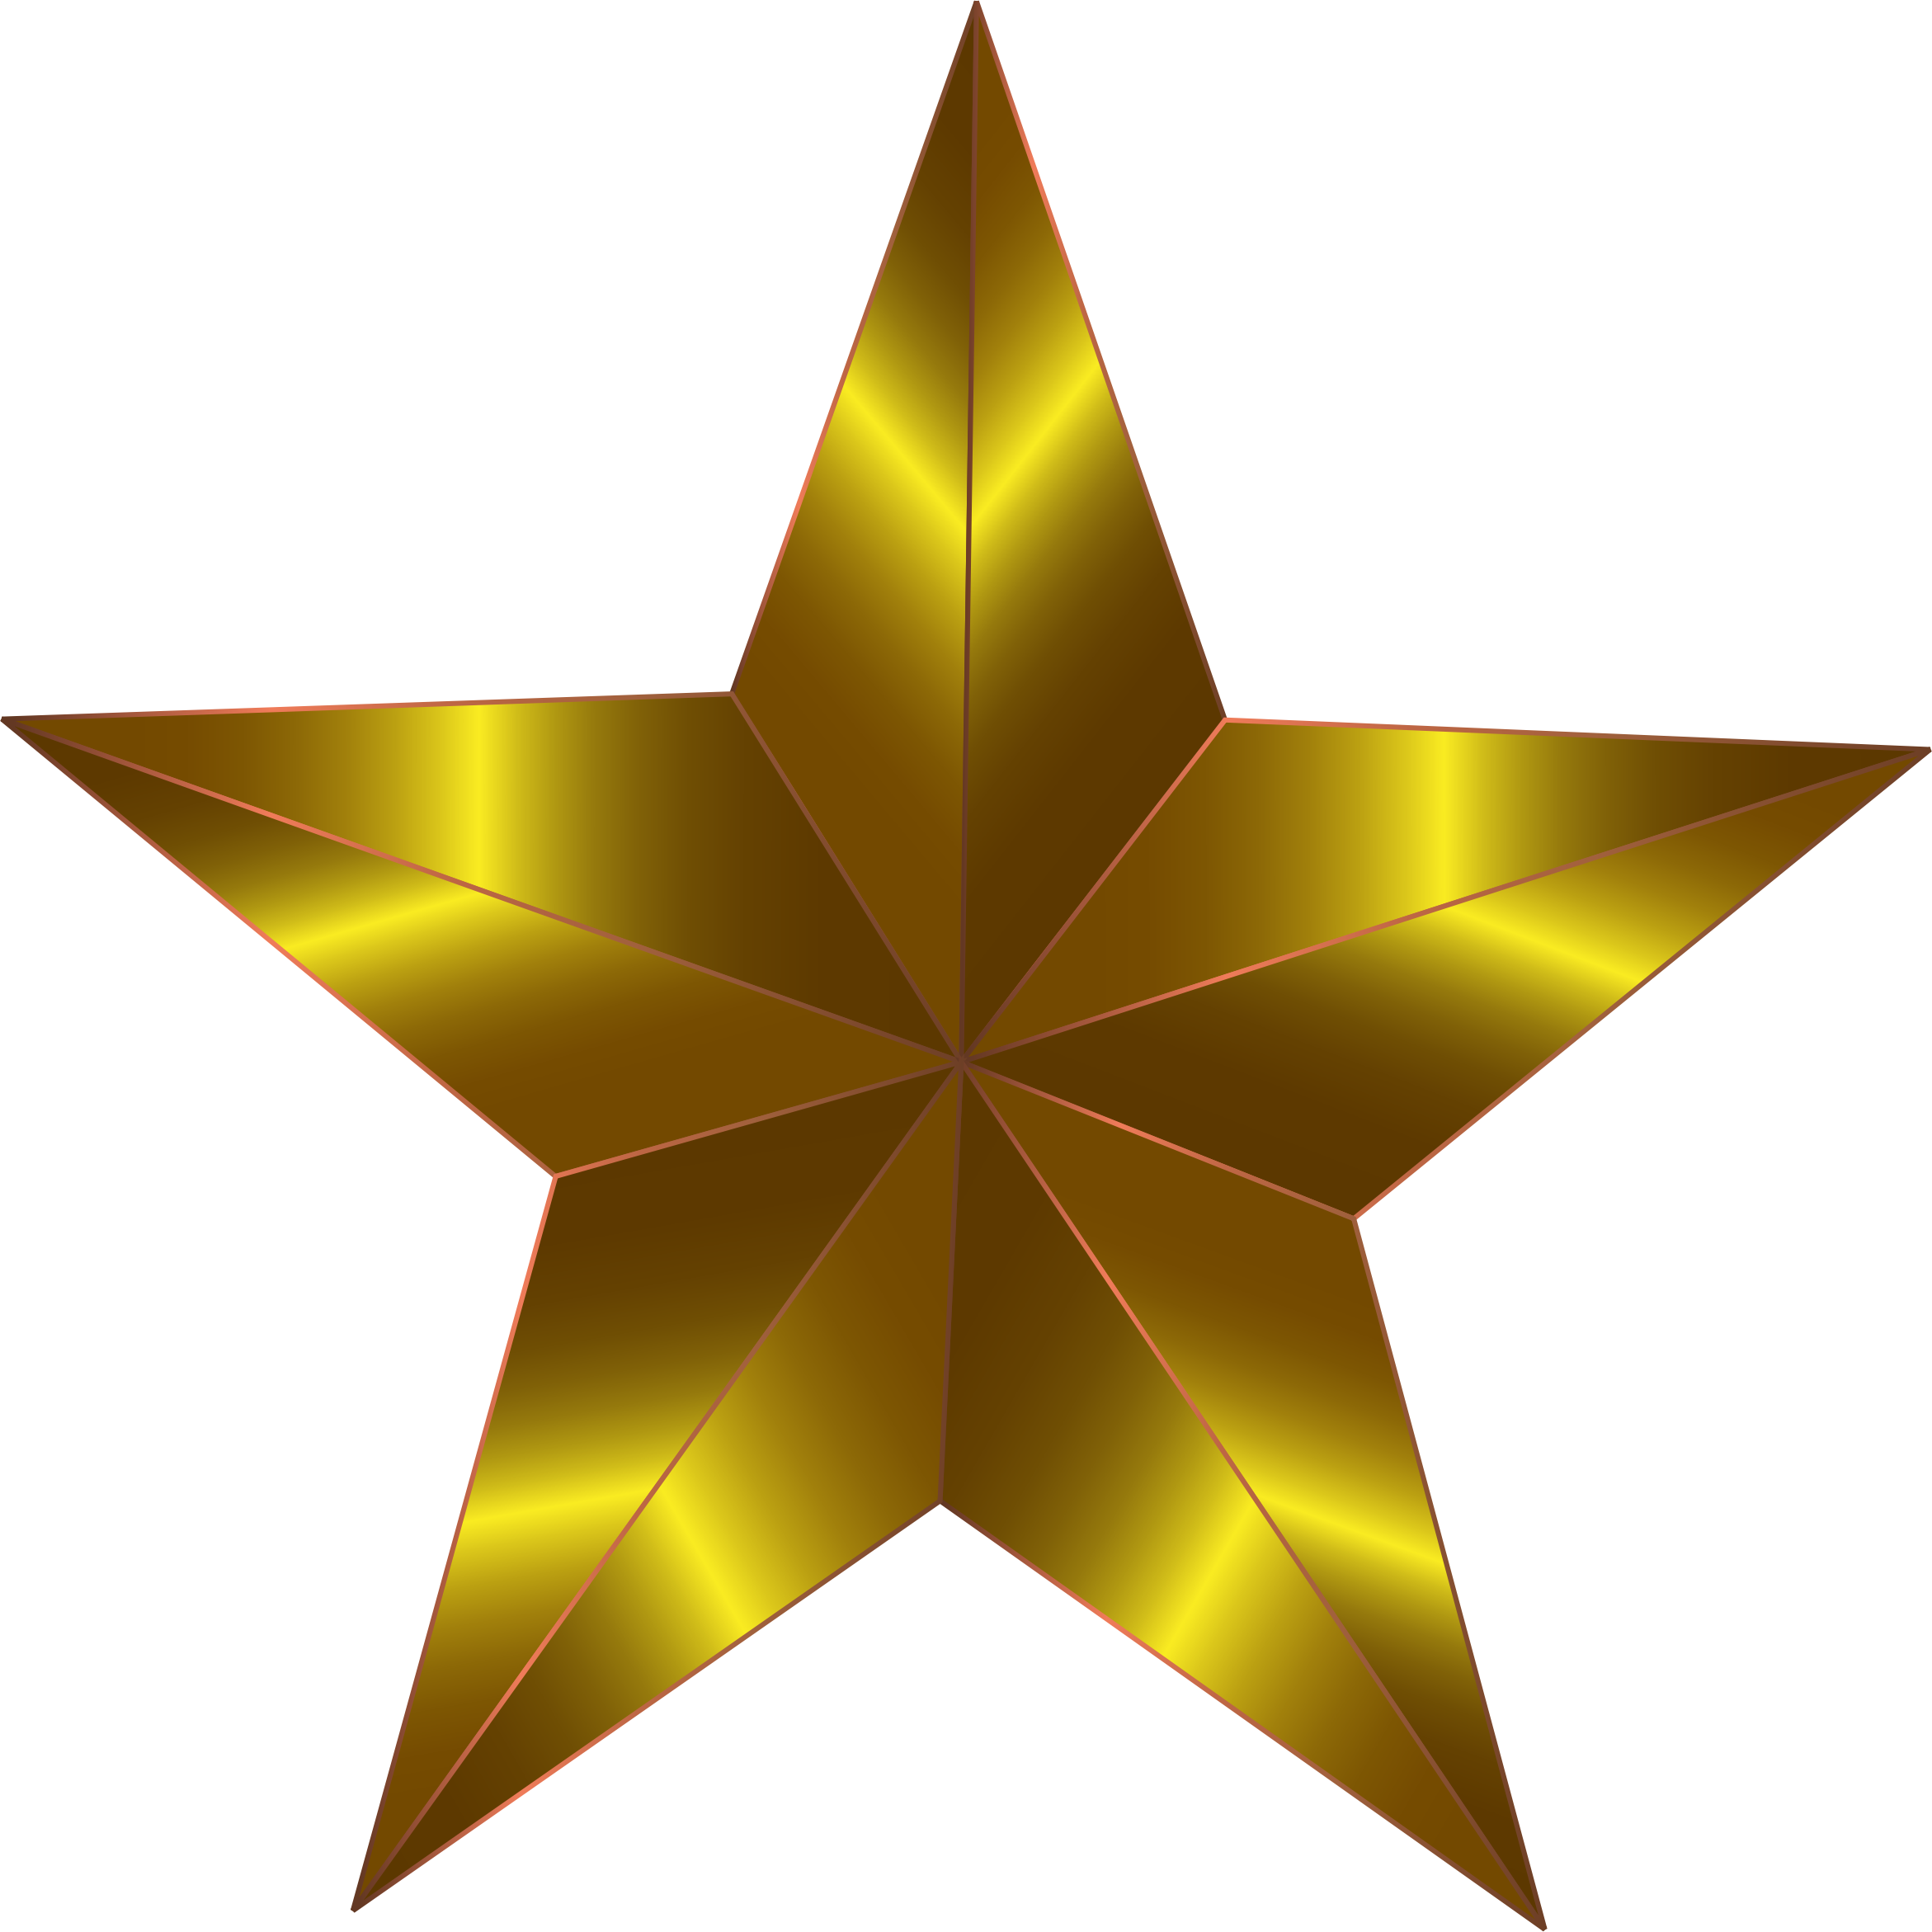 Transparent exploding star clipart - Prismatic Star 9 By Gdj - Gold Star Clipart Png